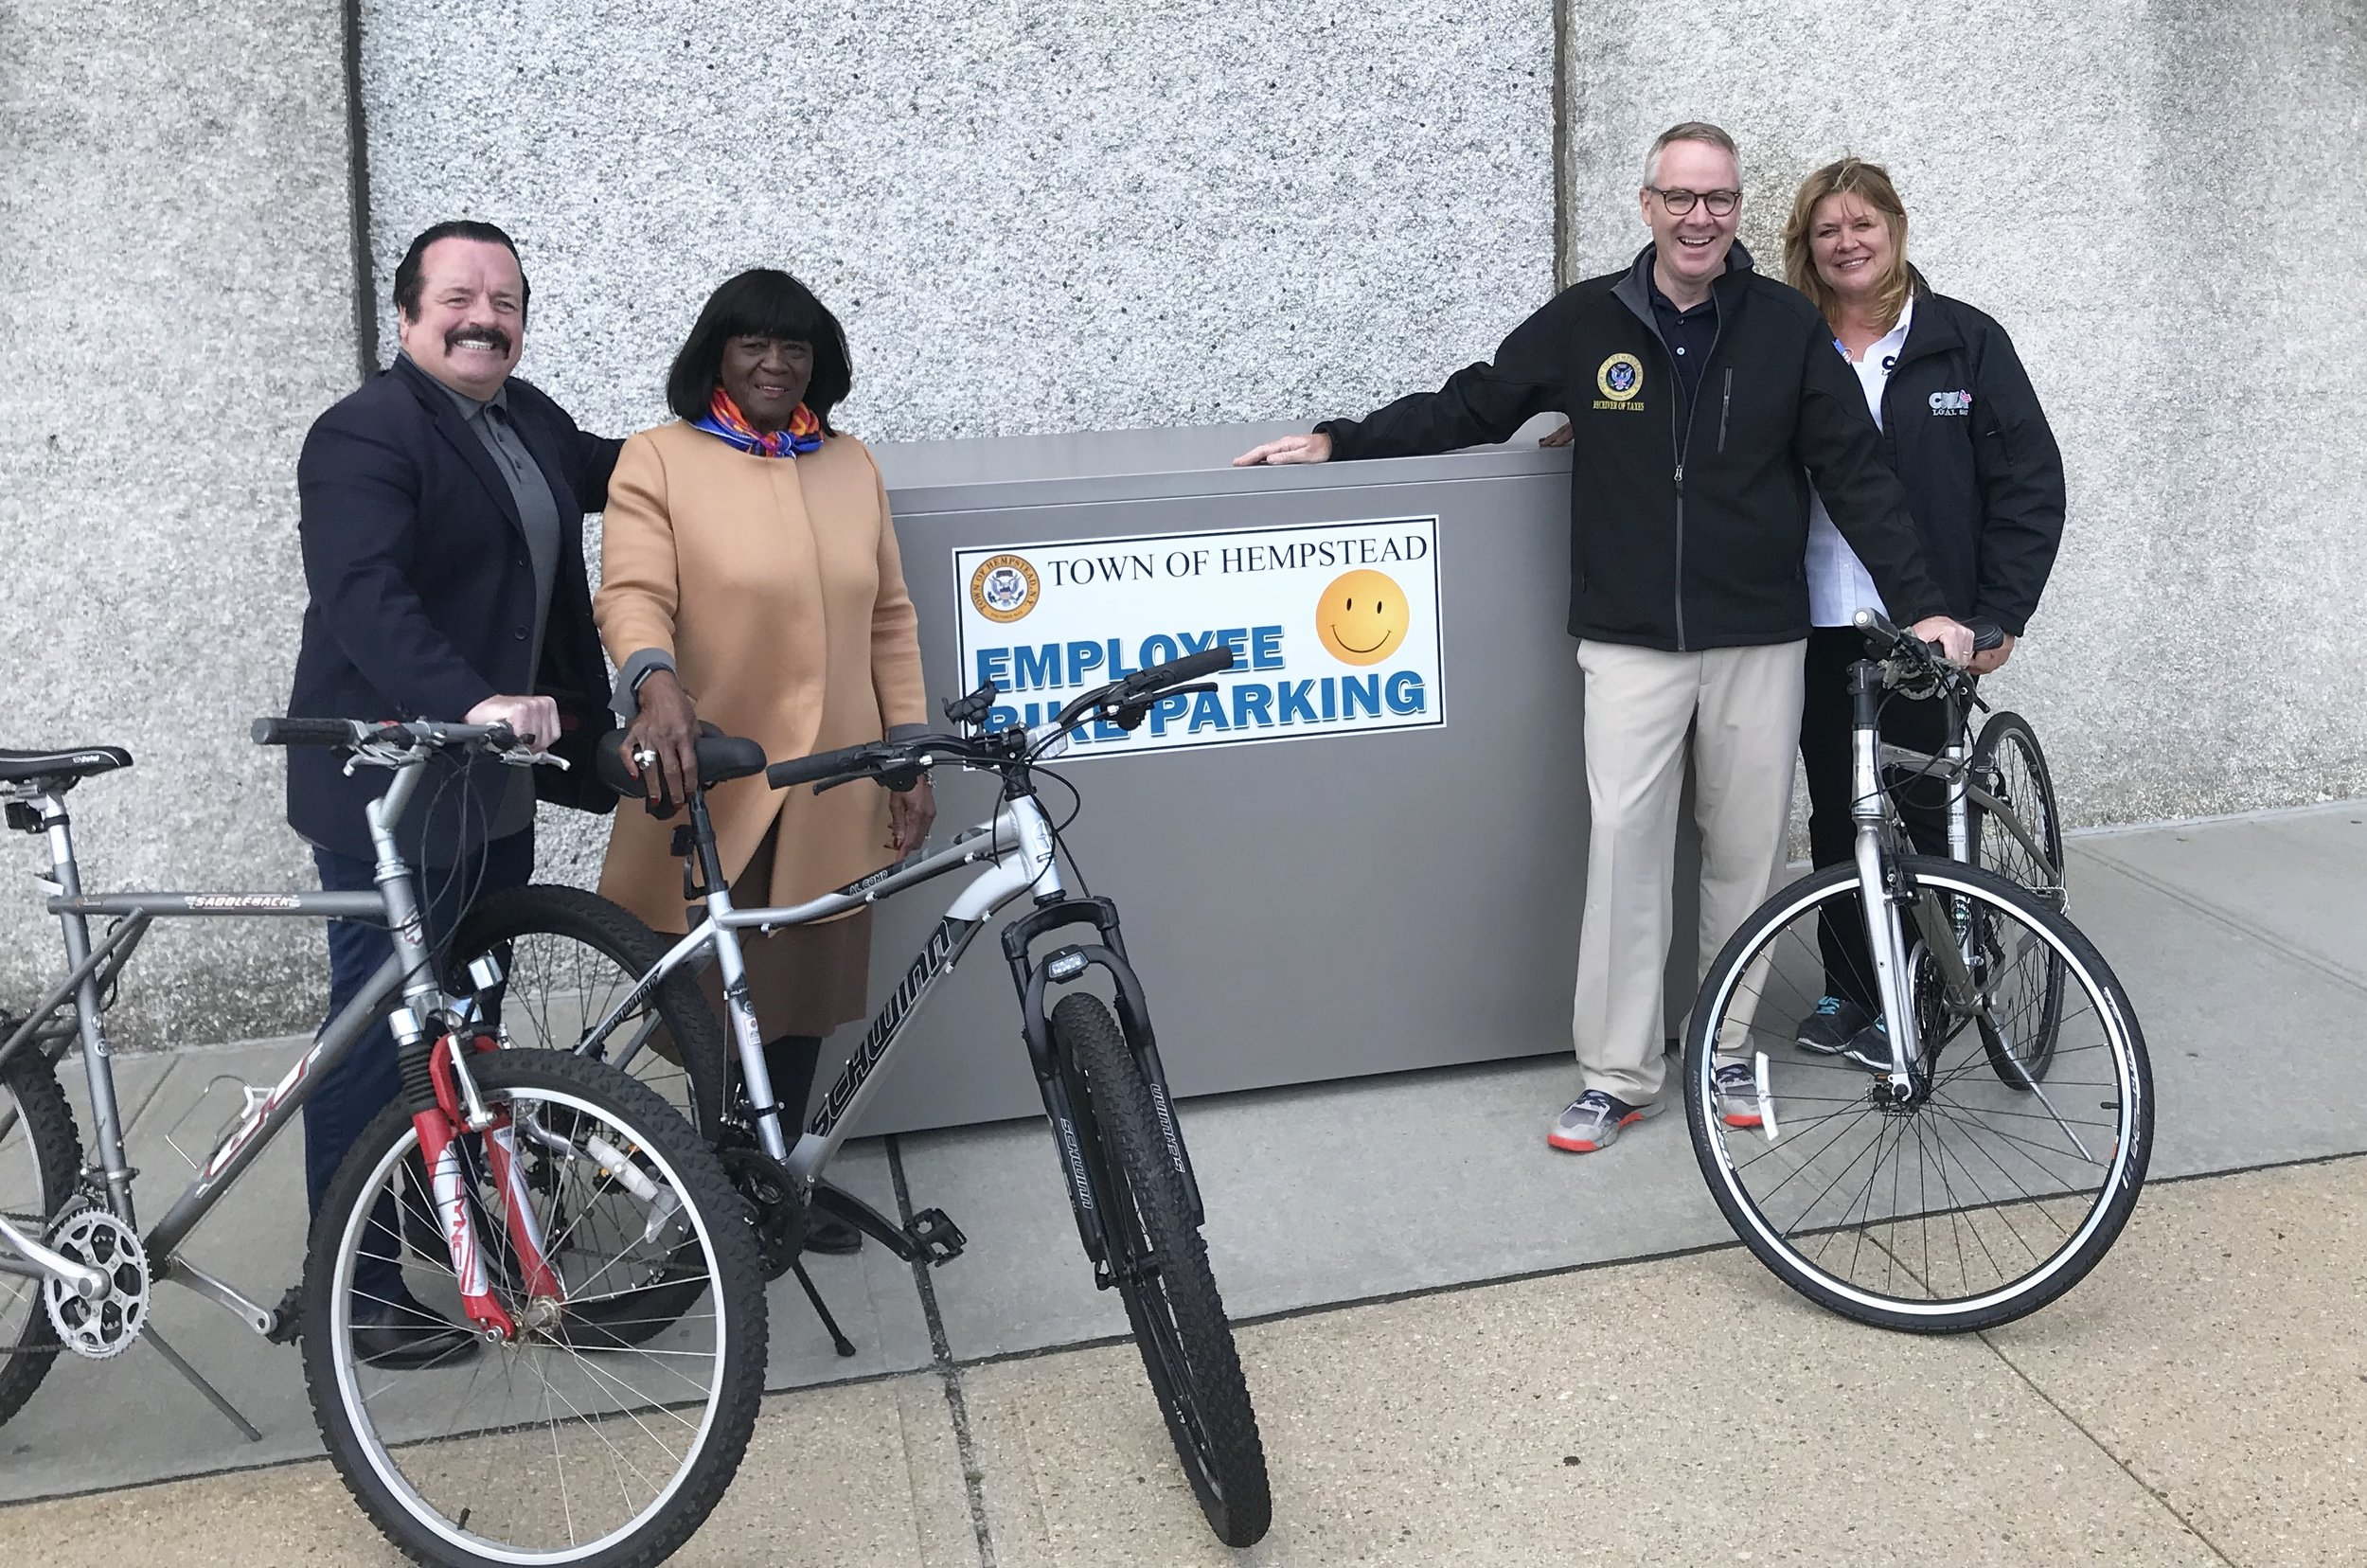 Don Clavin (2nd right) with Senior Councilwoman Dorothy Goosby (2nd left), CSEA Local 880 President Theresa Kohutka (right) and Public Safety Department Employee Ed Powers (left) during a National Employee Health and Fitness Month event. Clavin unveiled new bike lockers to help promote healthy lifestyles for town workers.